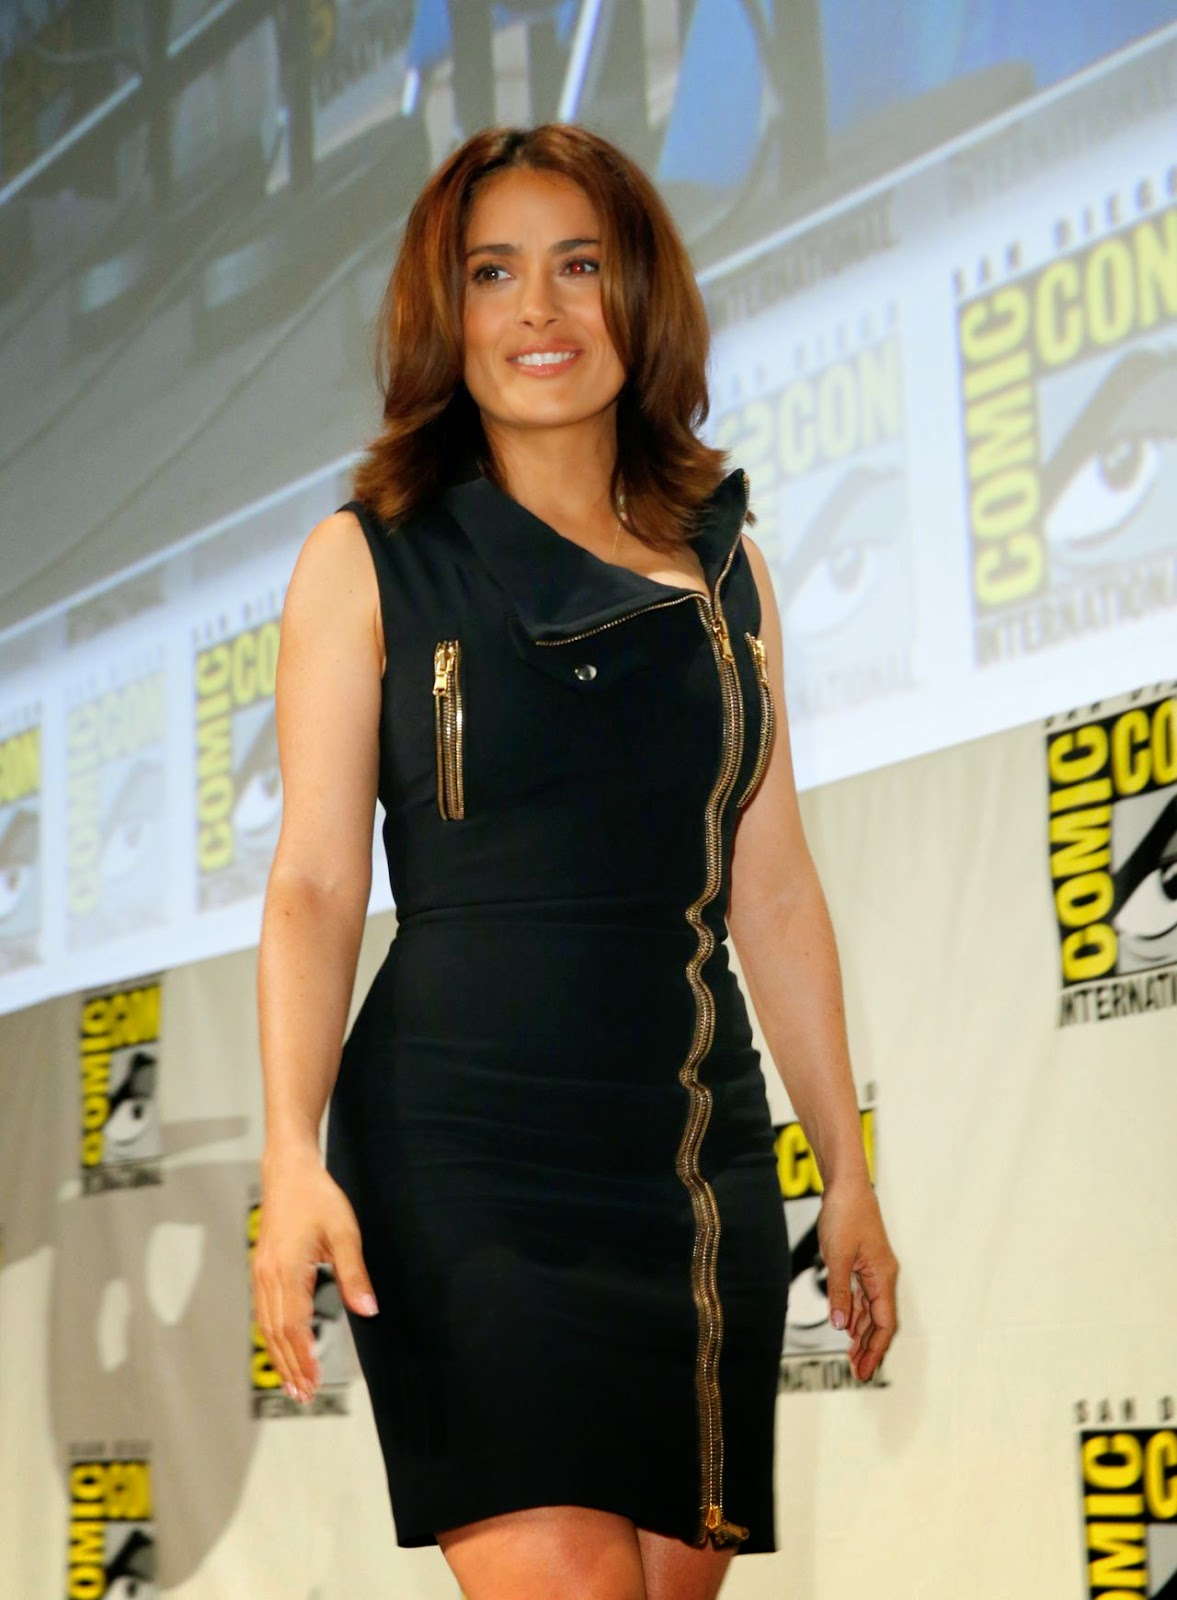 salma hayek everly comic con 2014 panel 02 SIZZLE SPOT :  Salma Hayek In Alexander McQueen – Comic Con 2014: 'Everly' Presentation